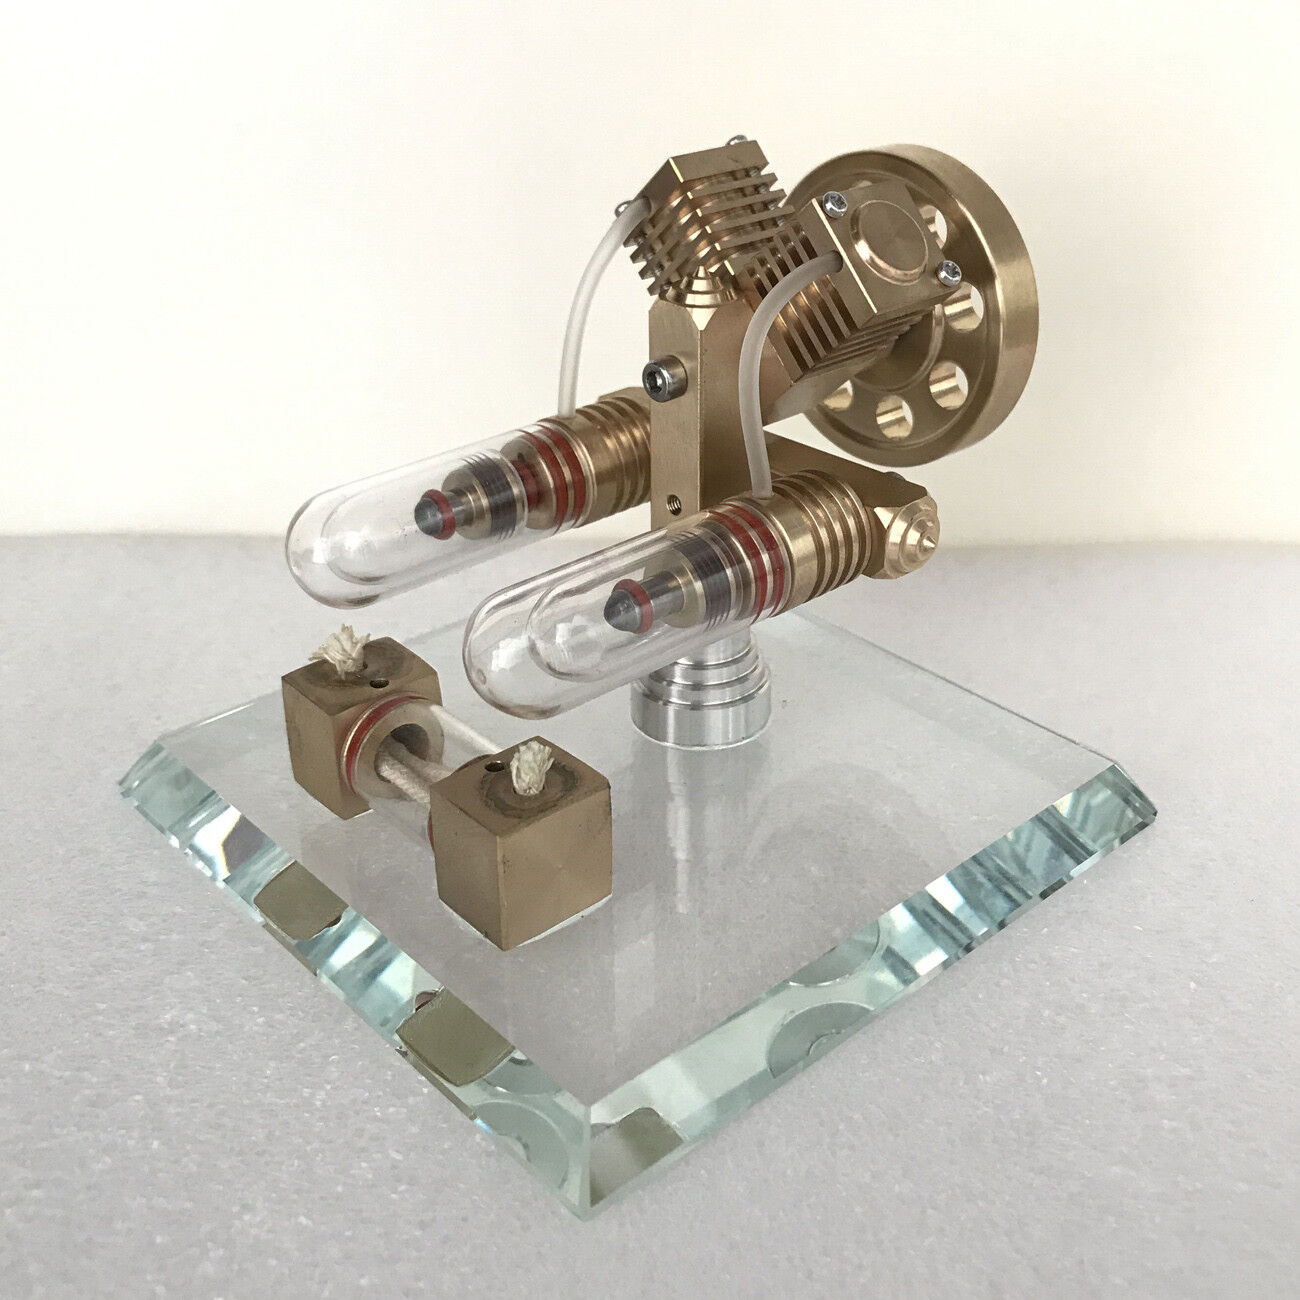 Hot Air Stirling Engine Model Toy Physics Education Air Heating Generator Motor